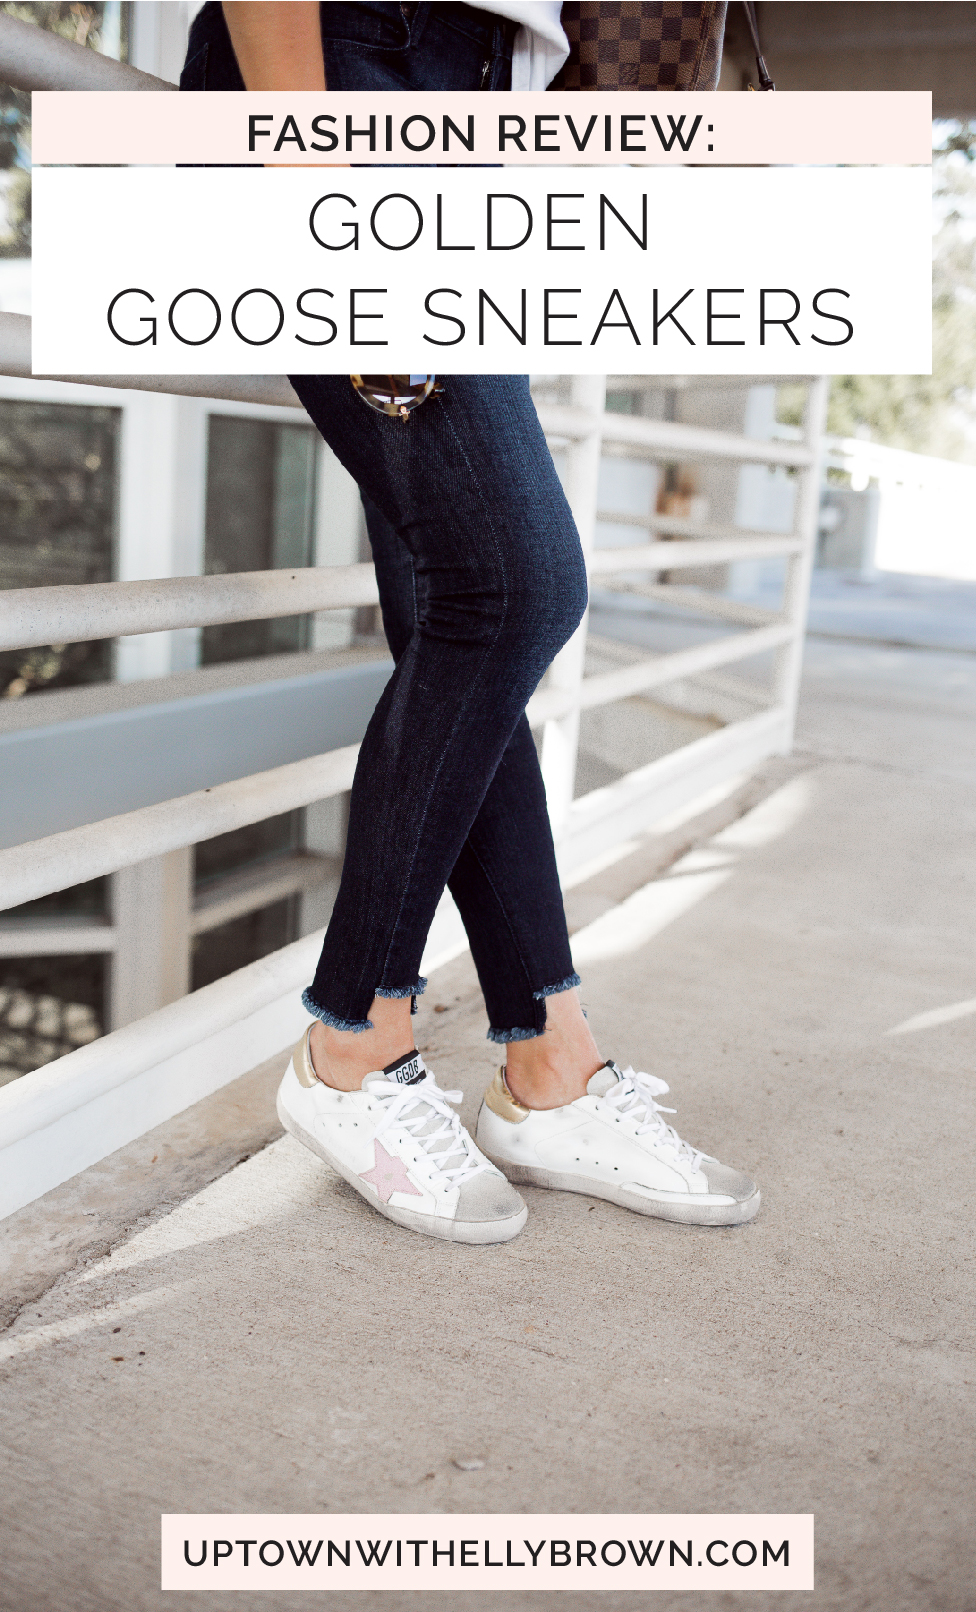 Houston Fashion blogger Uptown with Elly Brown shares her thoughts on if the Golden Goose s